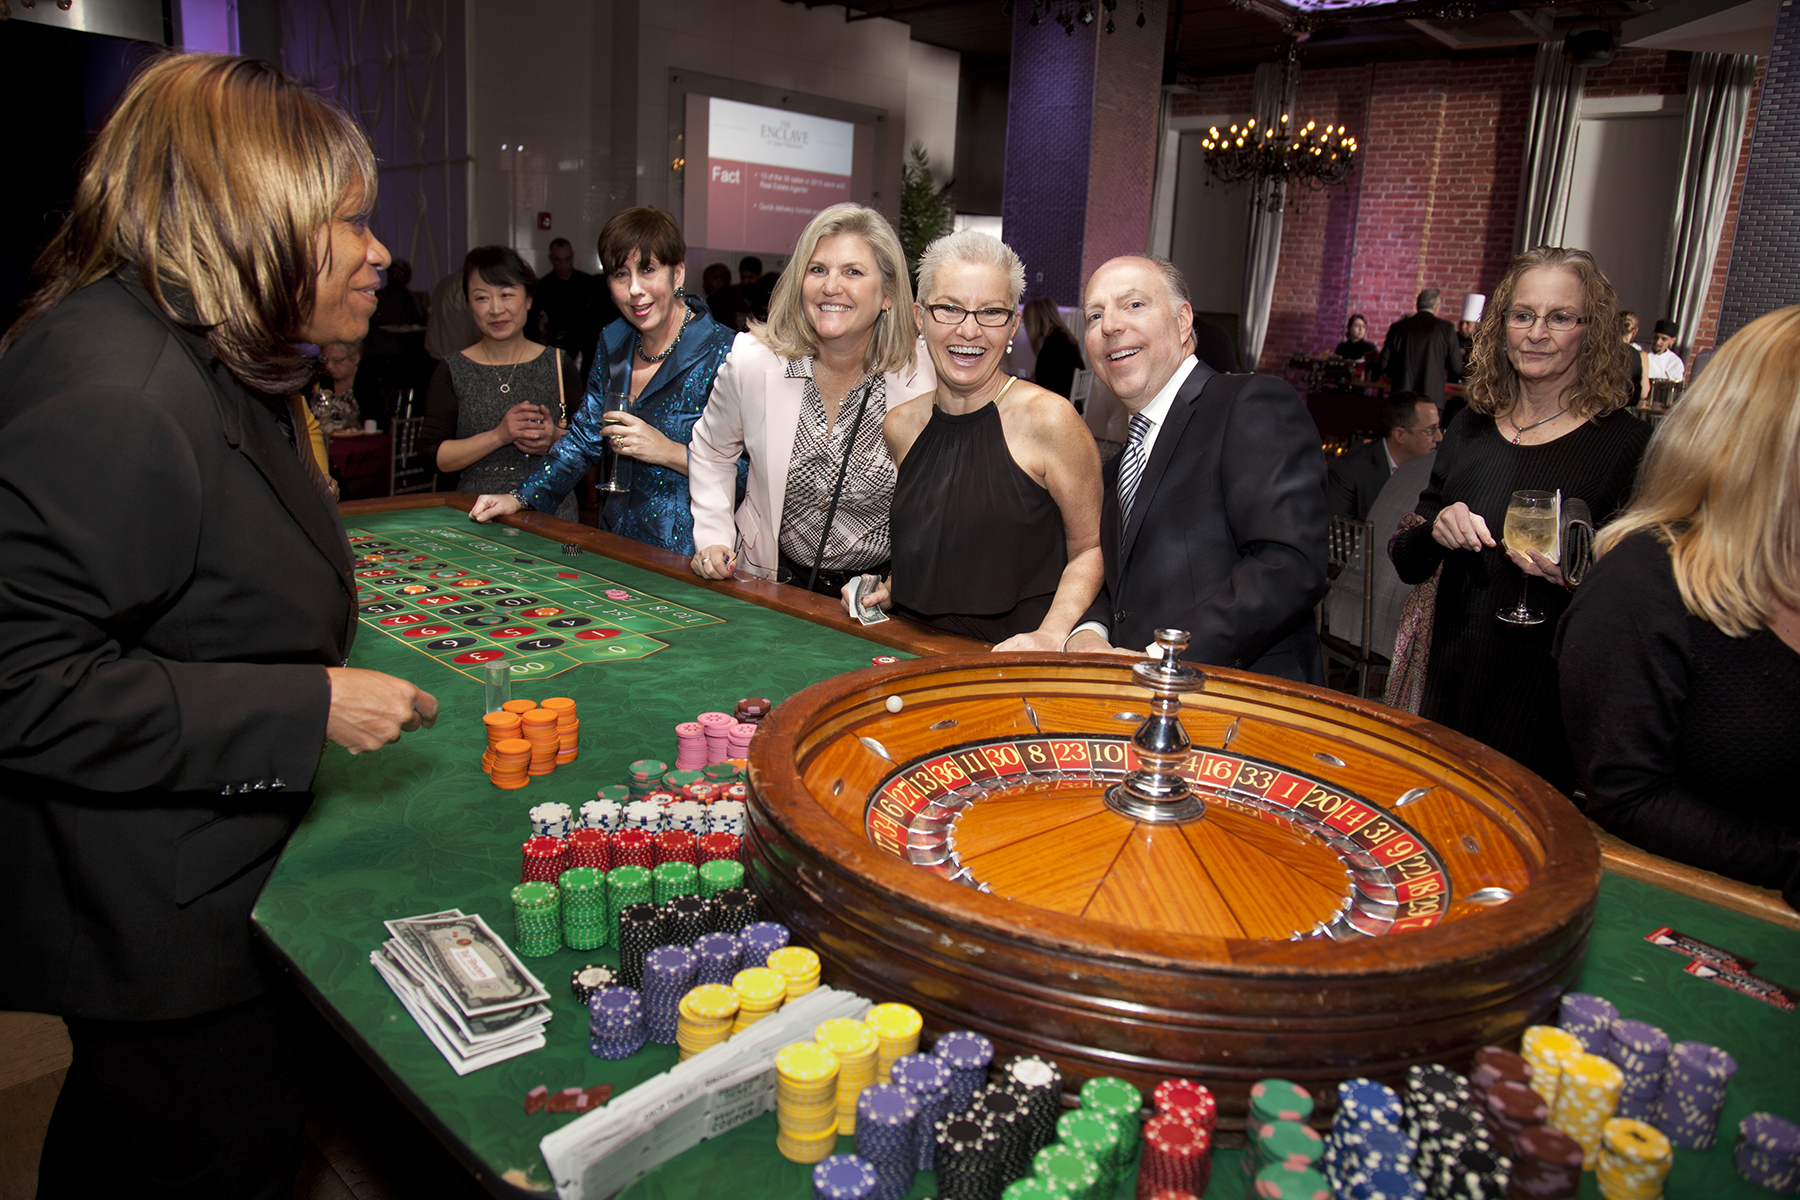 Roulette Table Event Photography Taylor Photo